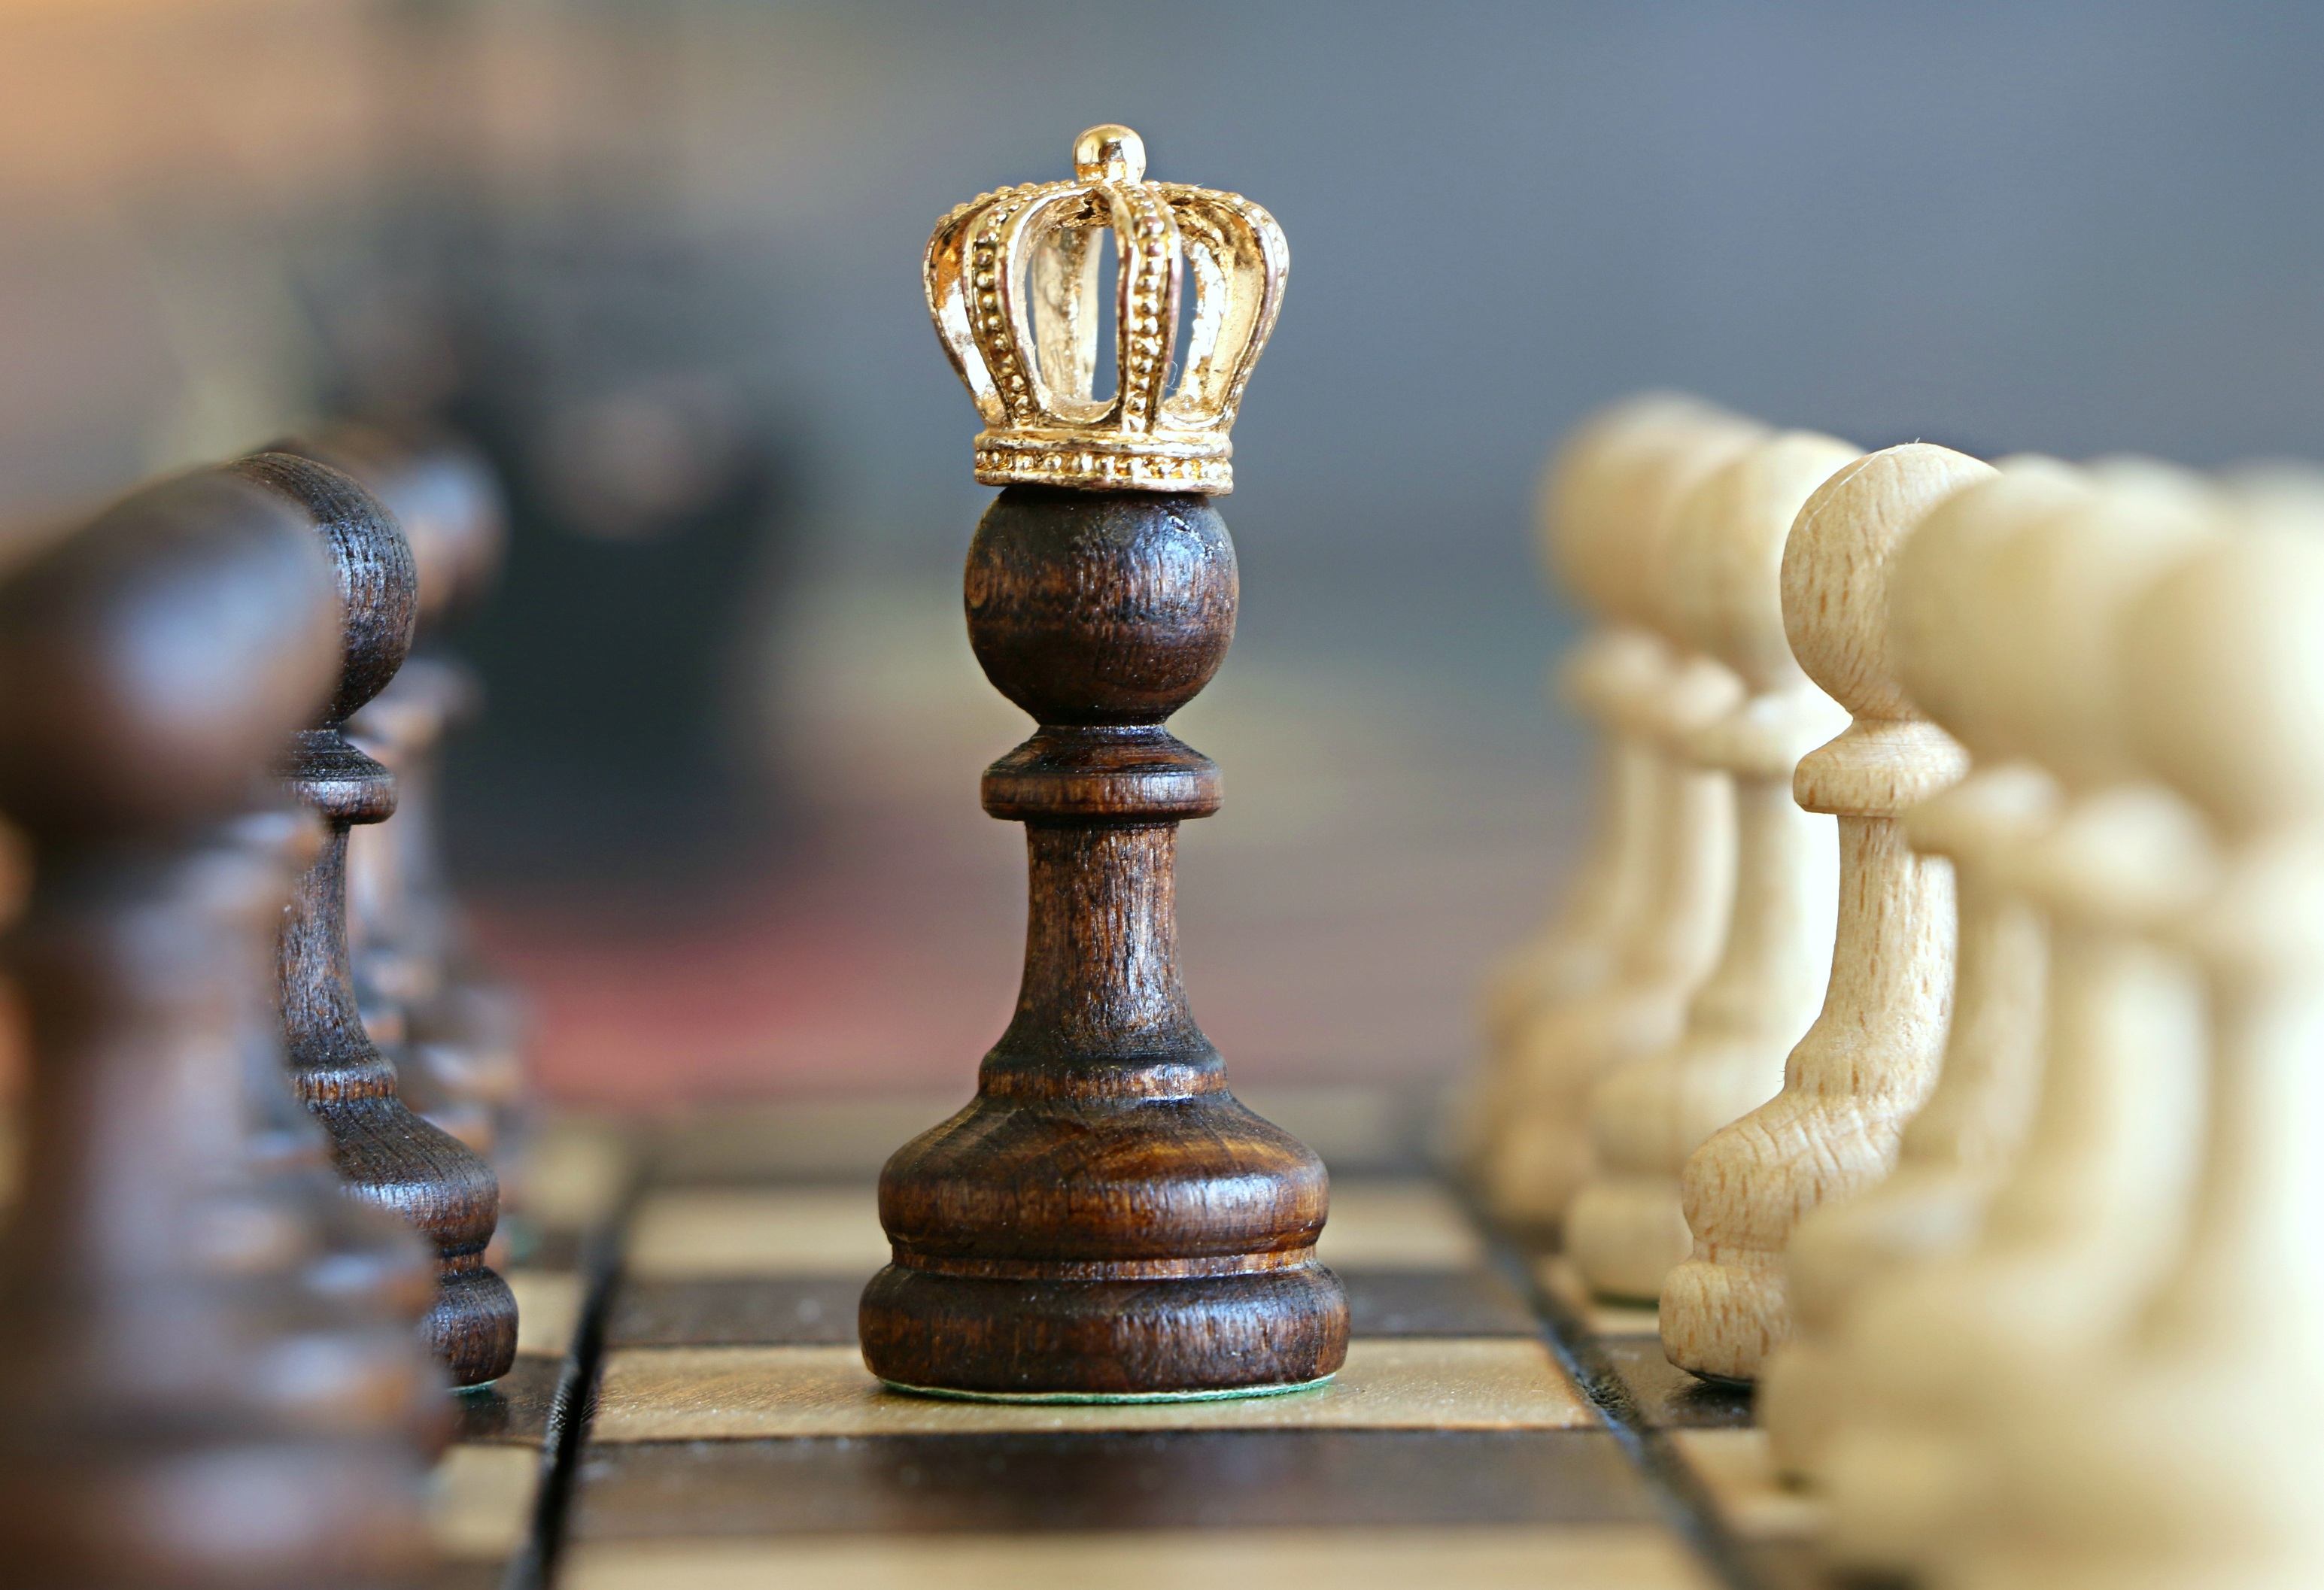 chess piece wearing crown symbolizing the game of claims